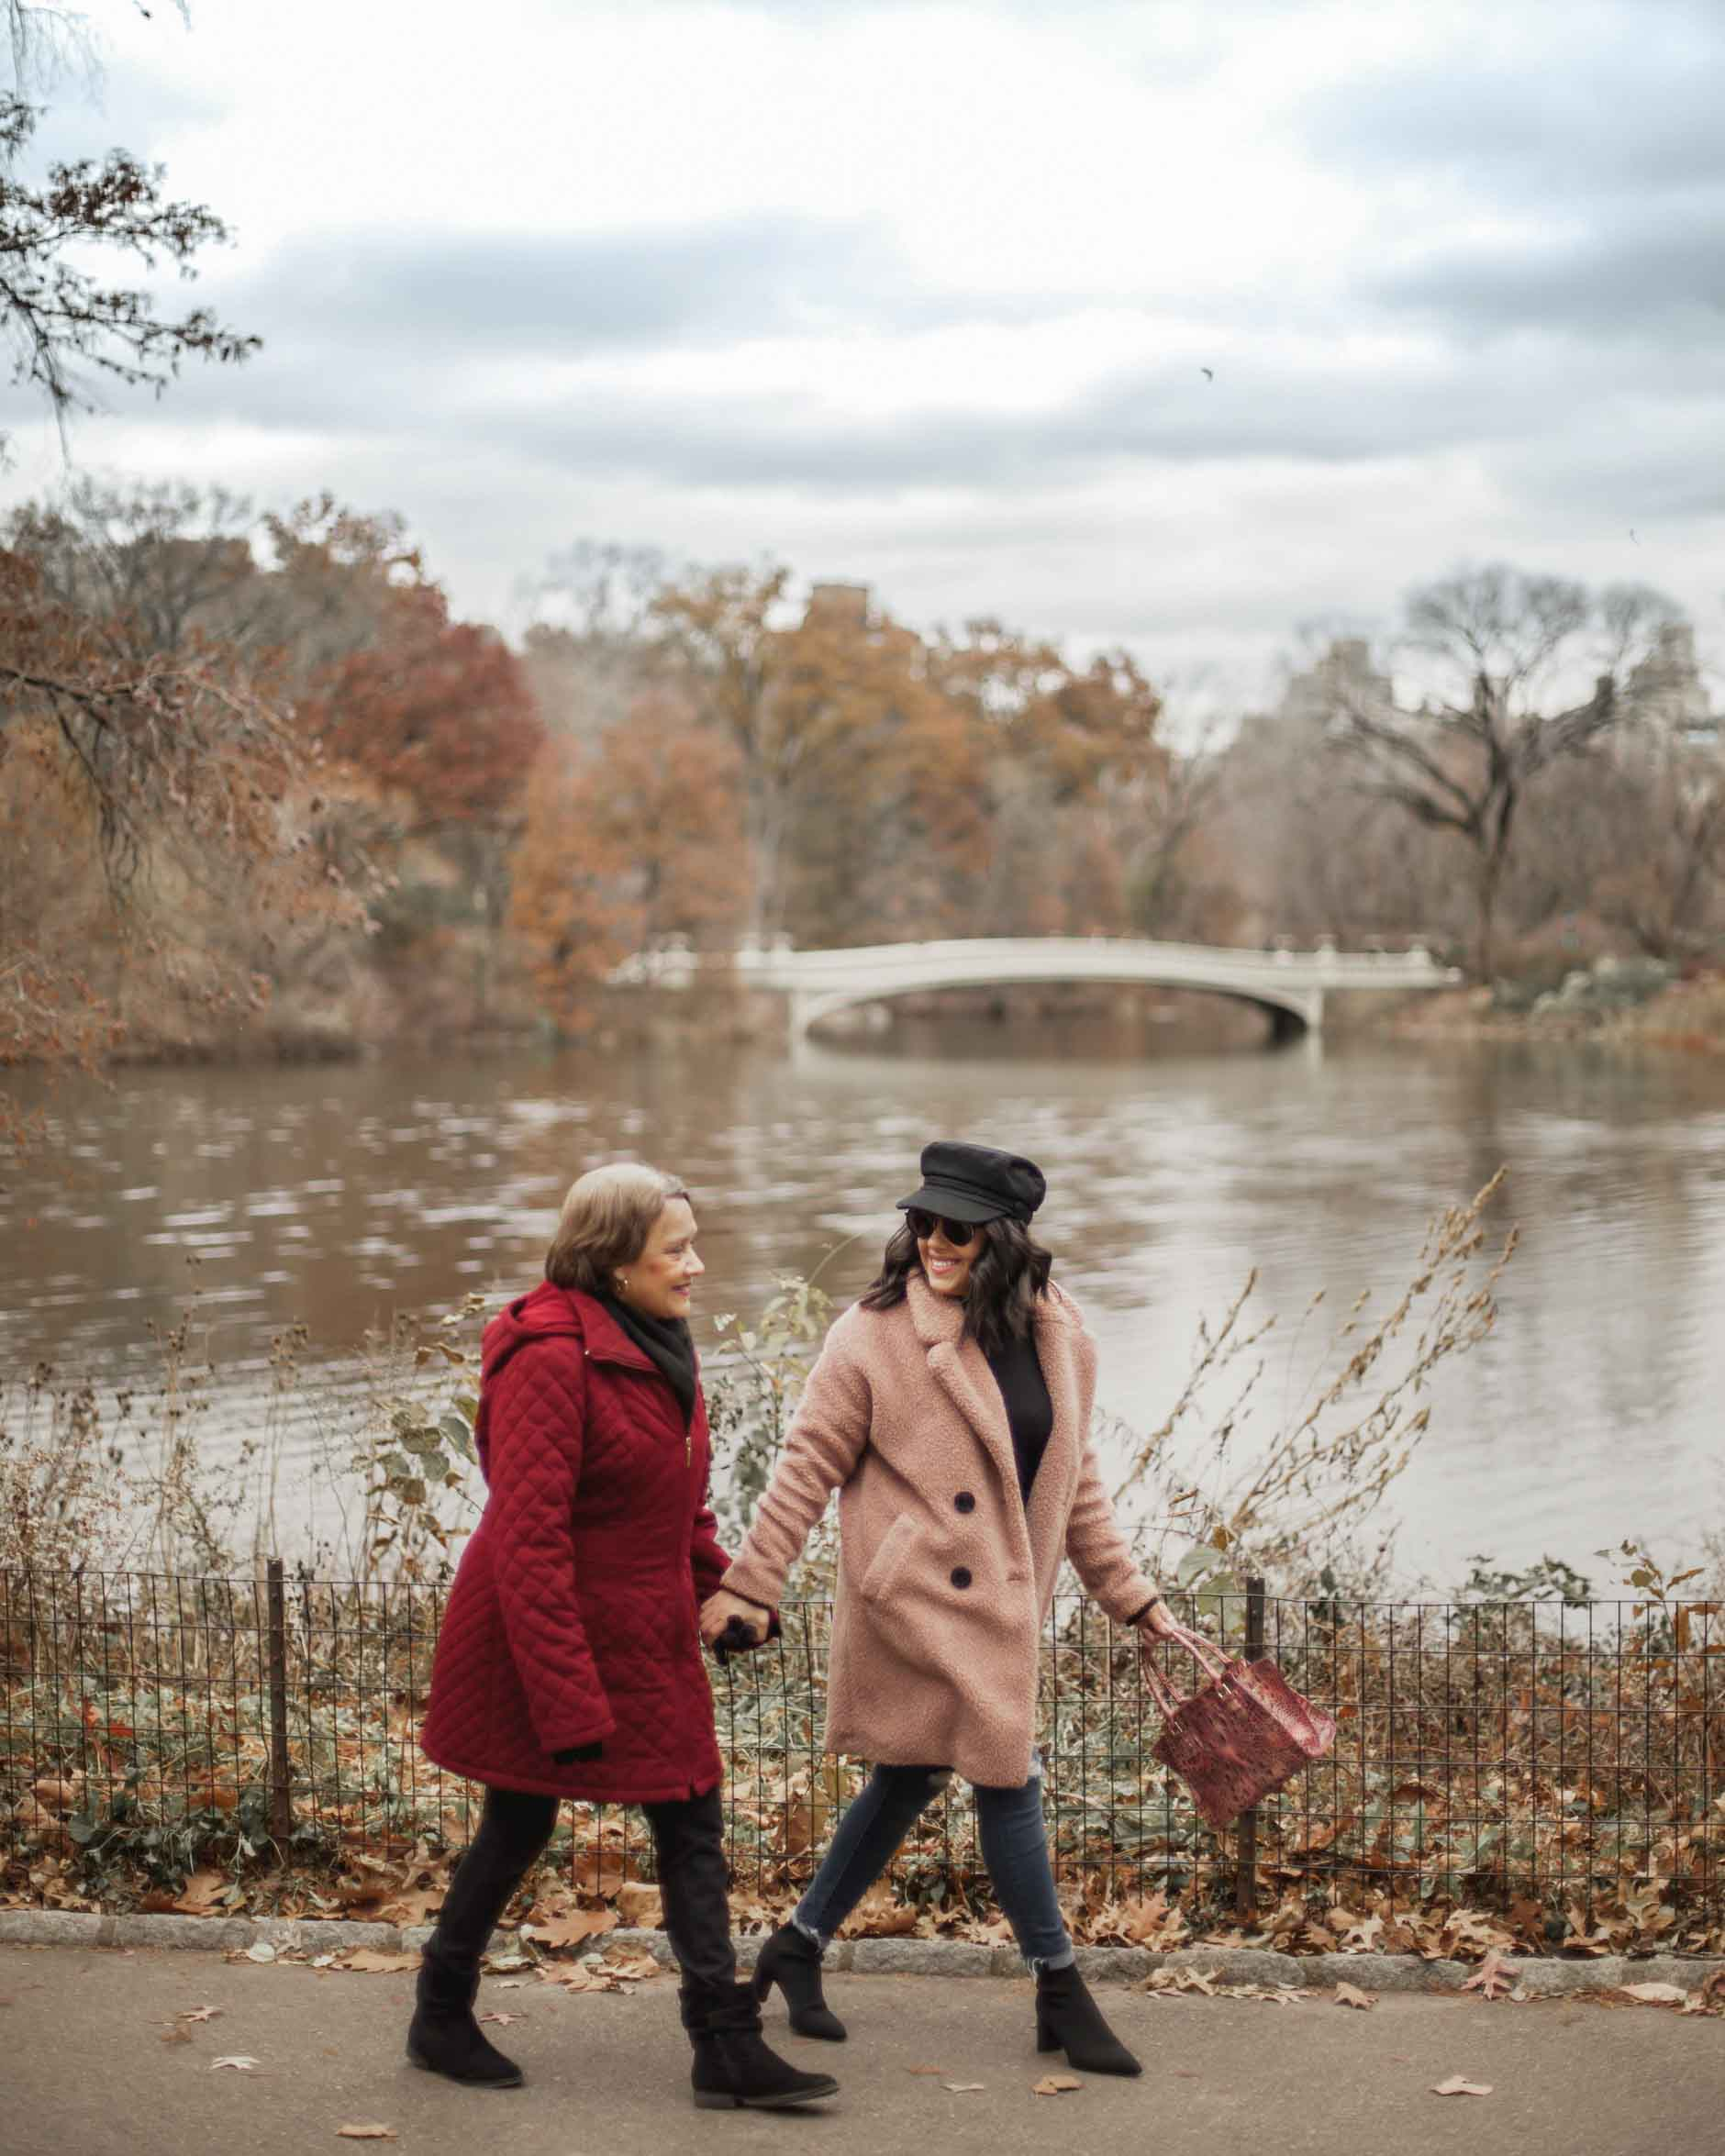 naty michele walking with her mom in central park